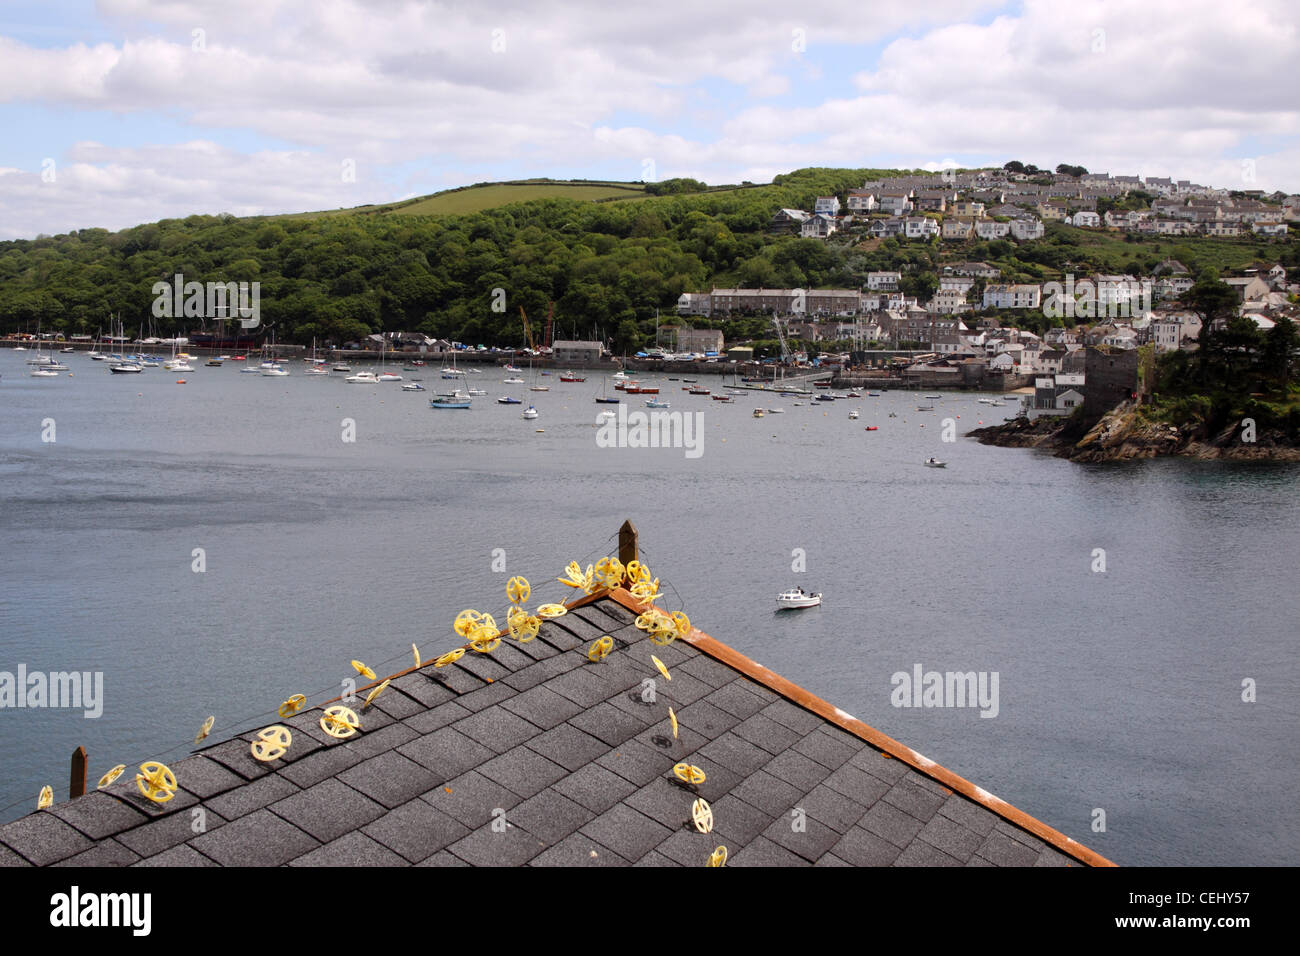 A seagull deterrent on a rooftop at Fowey, looking out over the river to Polruan, Cornwall. - Stock Image